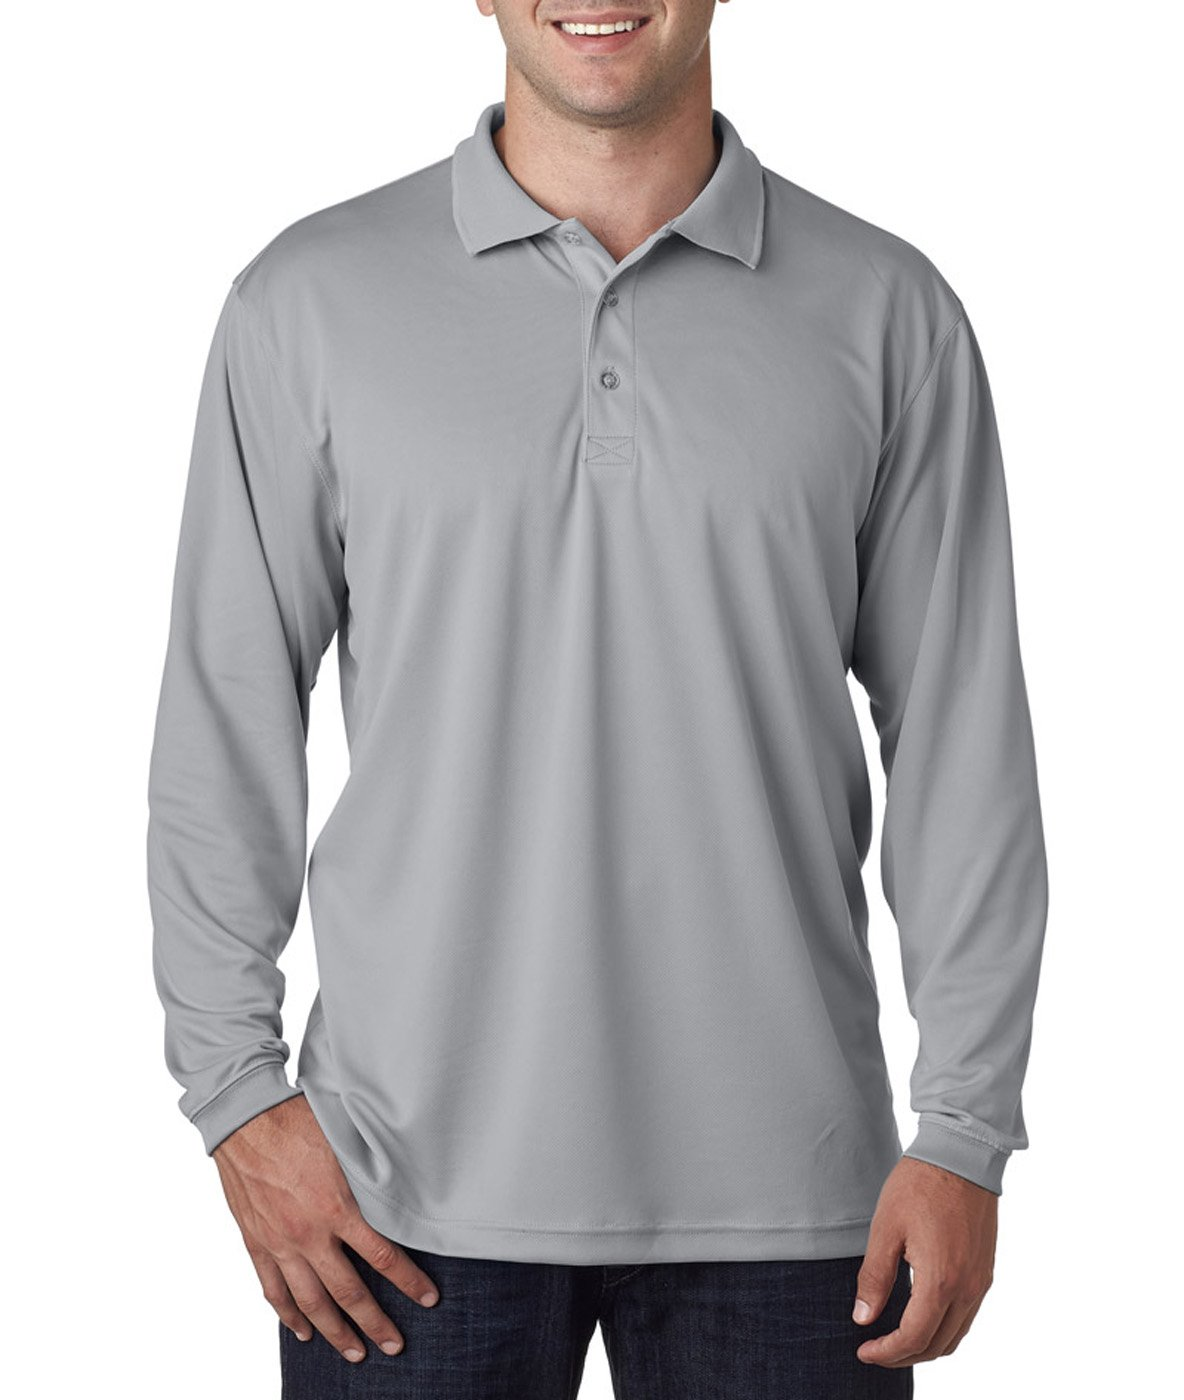 UltraClub@ Adult Cool - Dry Mesh Sport Long-Sleeve Polo - Grey - 3XL